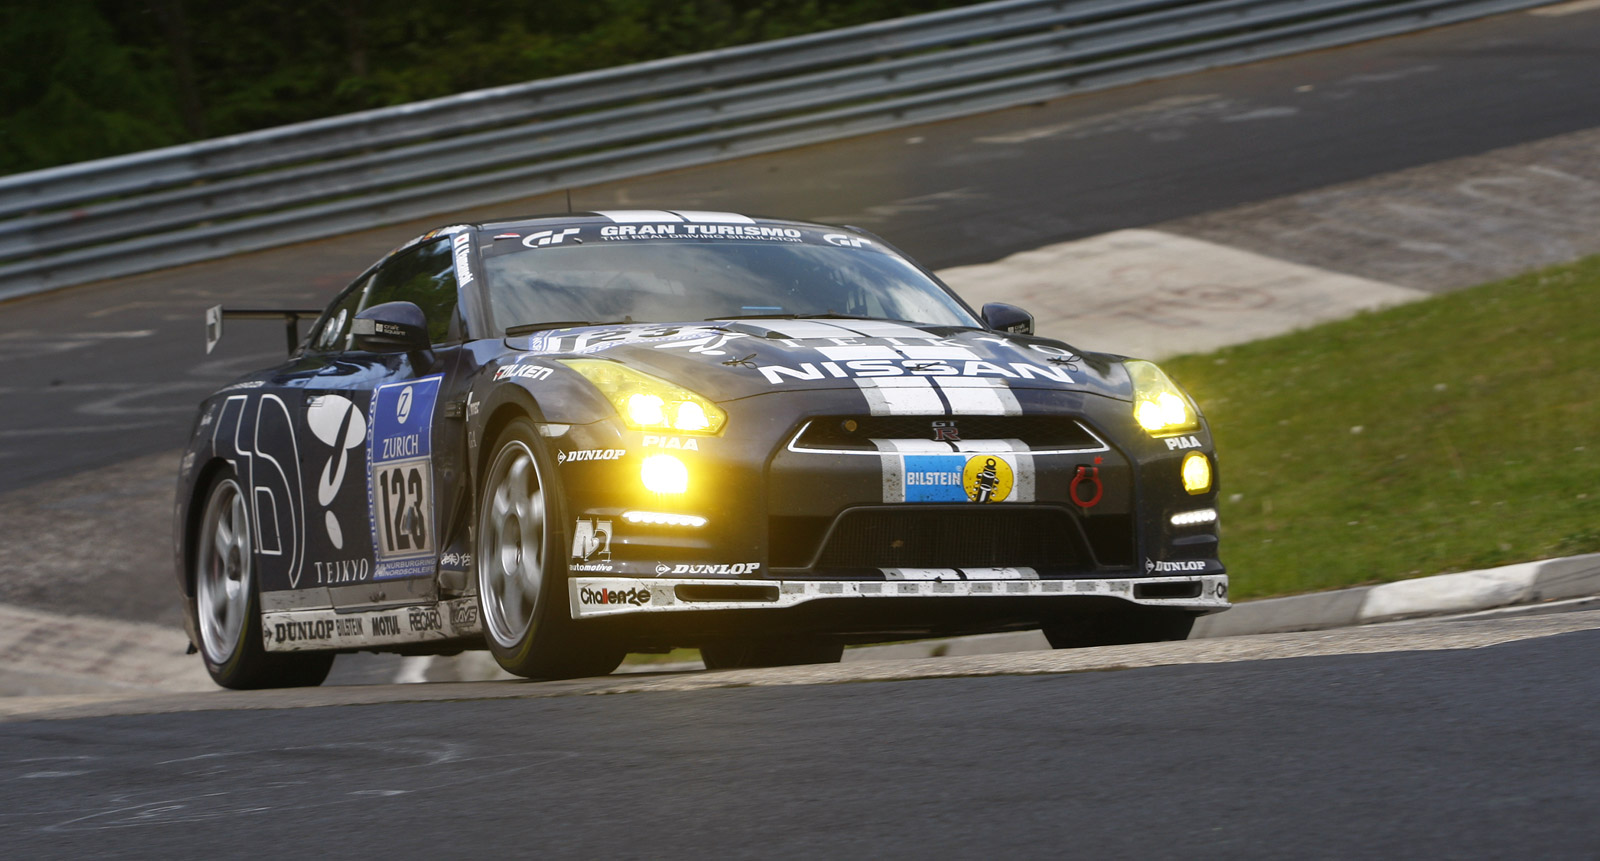 2013 Nissan Gt R Wins Class Comes 30th Overall In Nurburgring 24 Hours